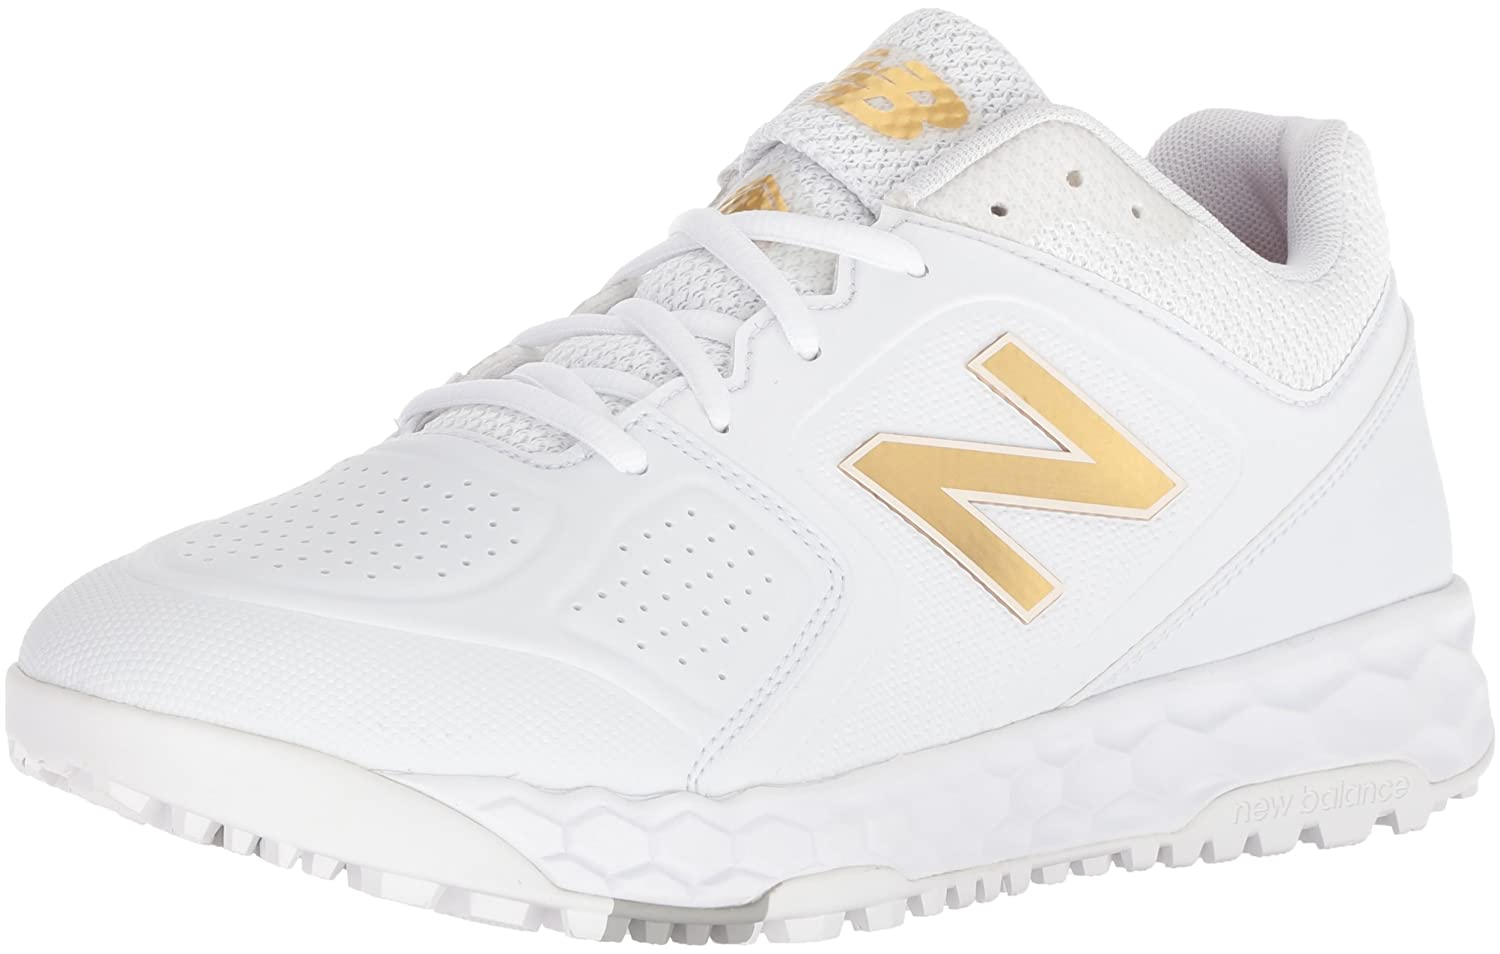 New Balance Softball Women's Velo V1 Turf Softball Balance Shoe B075R7BYW6 6.5 D US|White/White 21c0ee